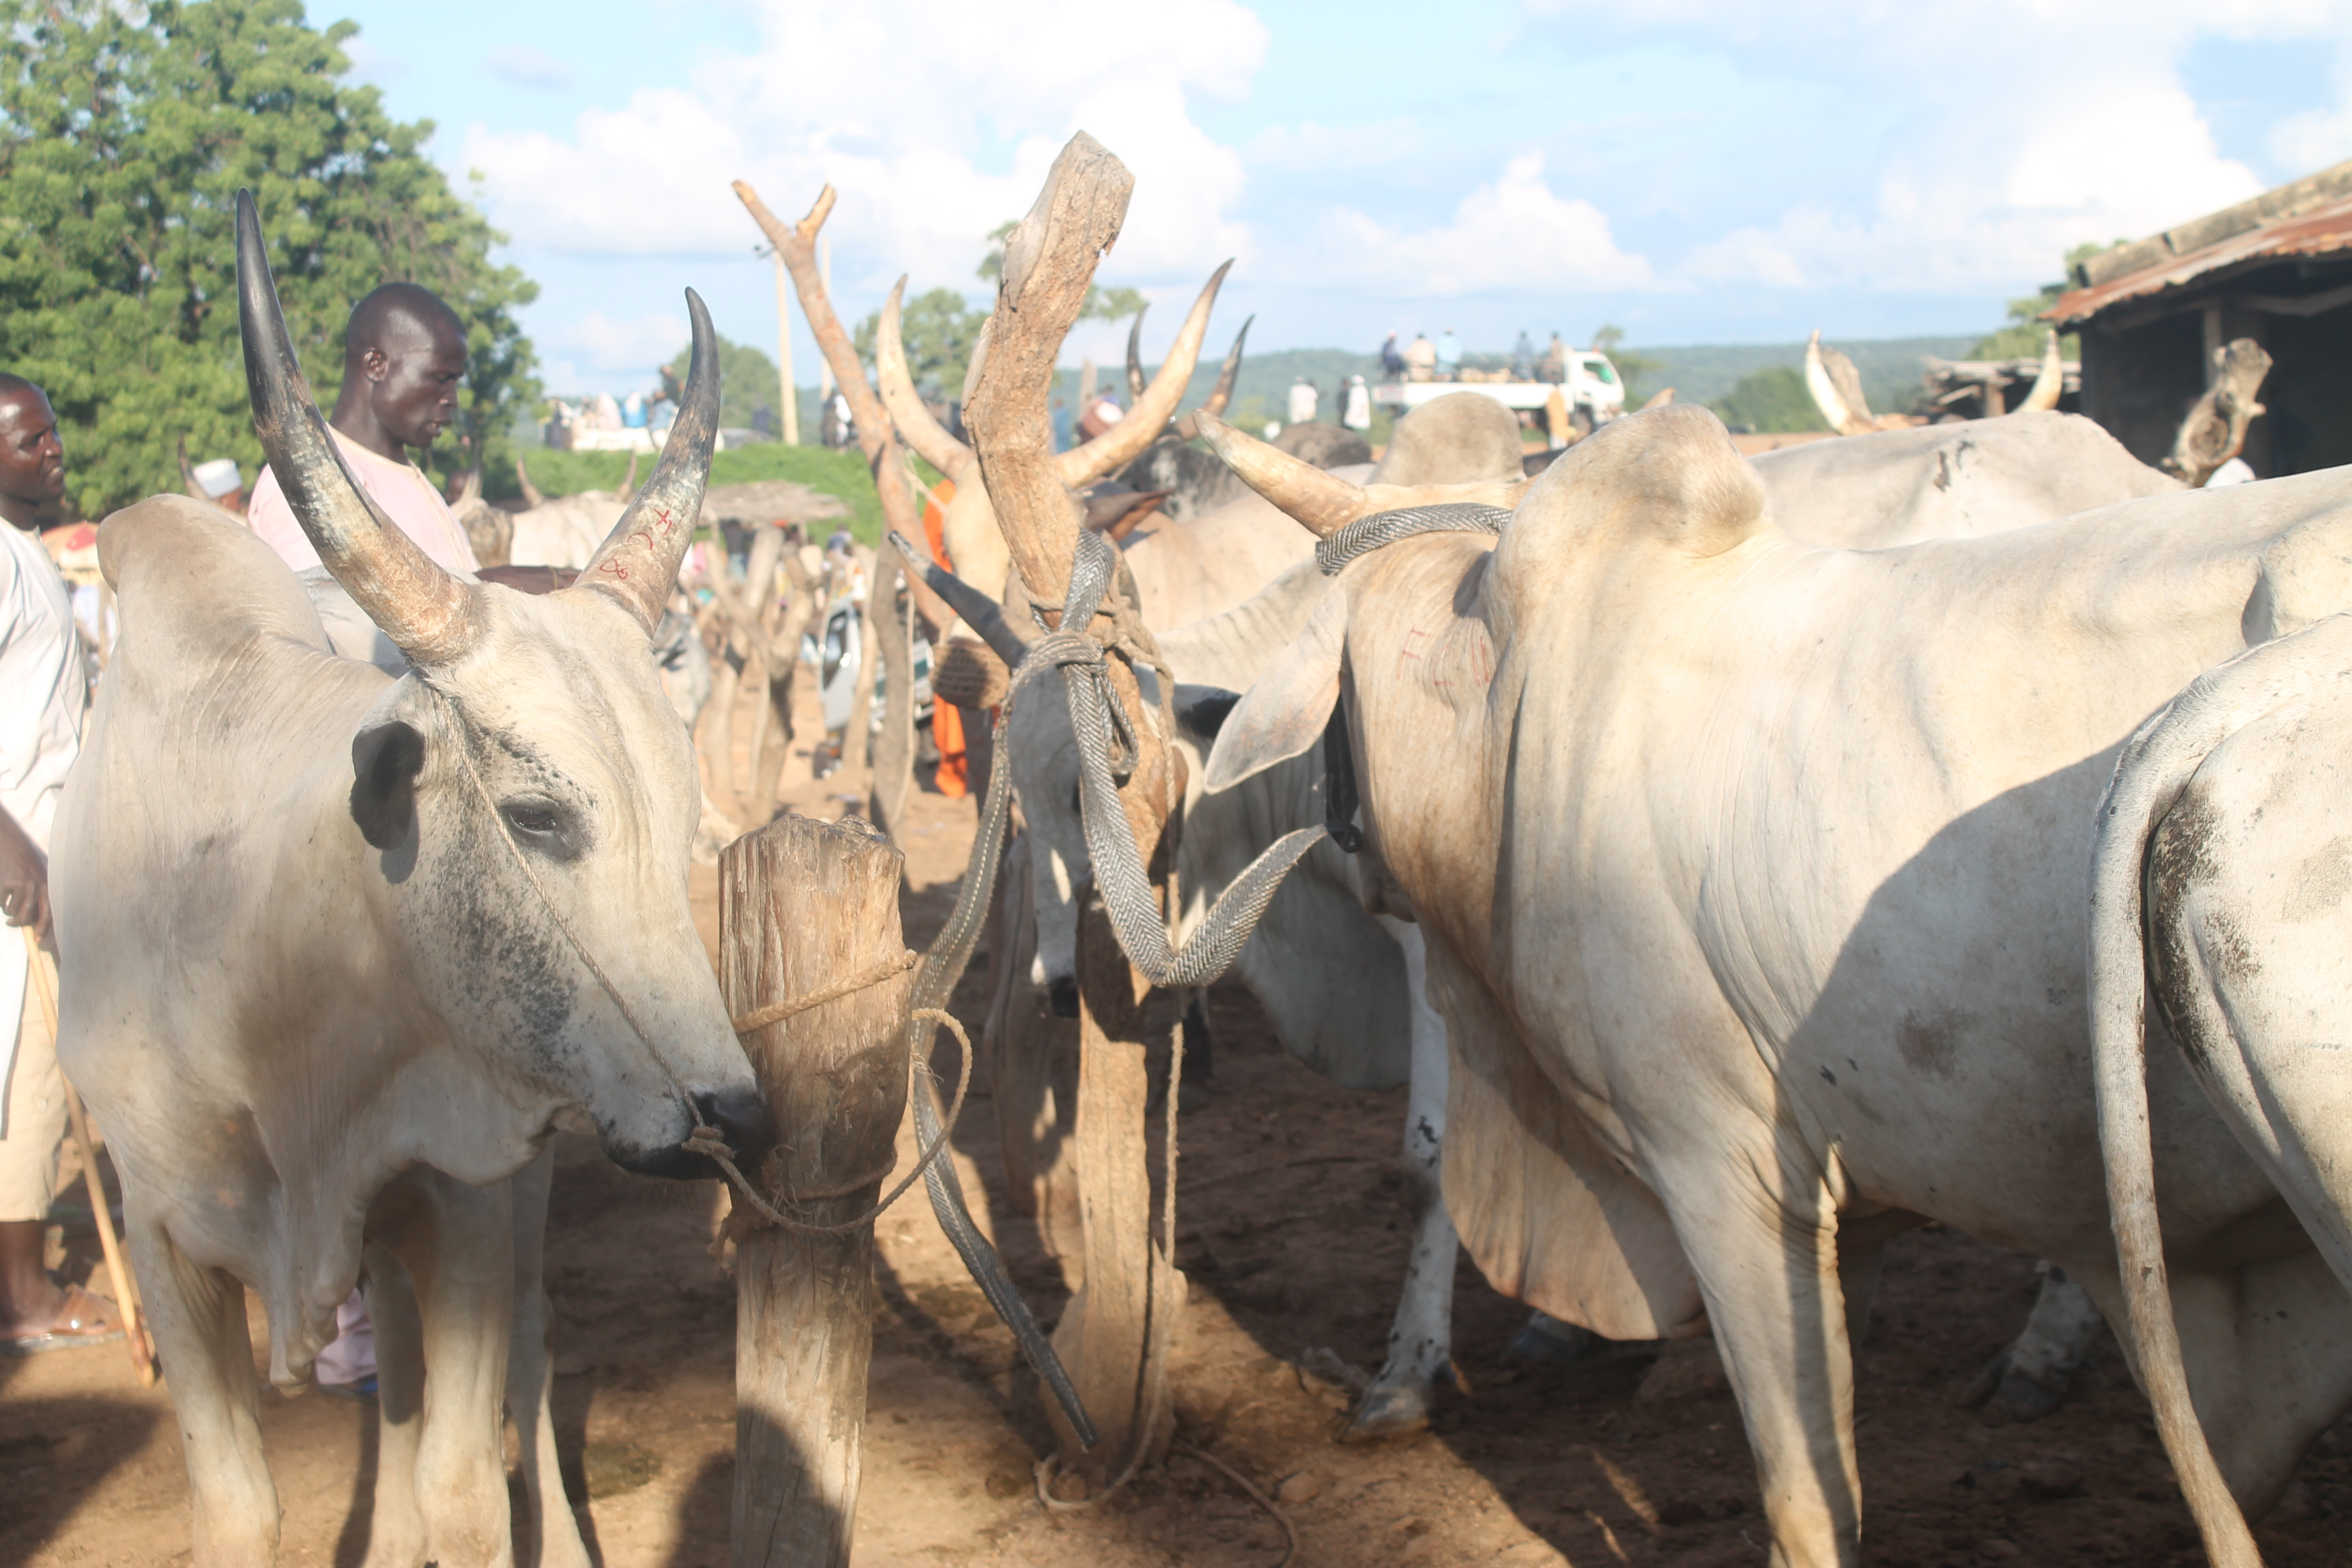 Interesting facts about cattle farming